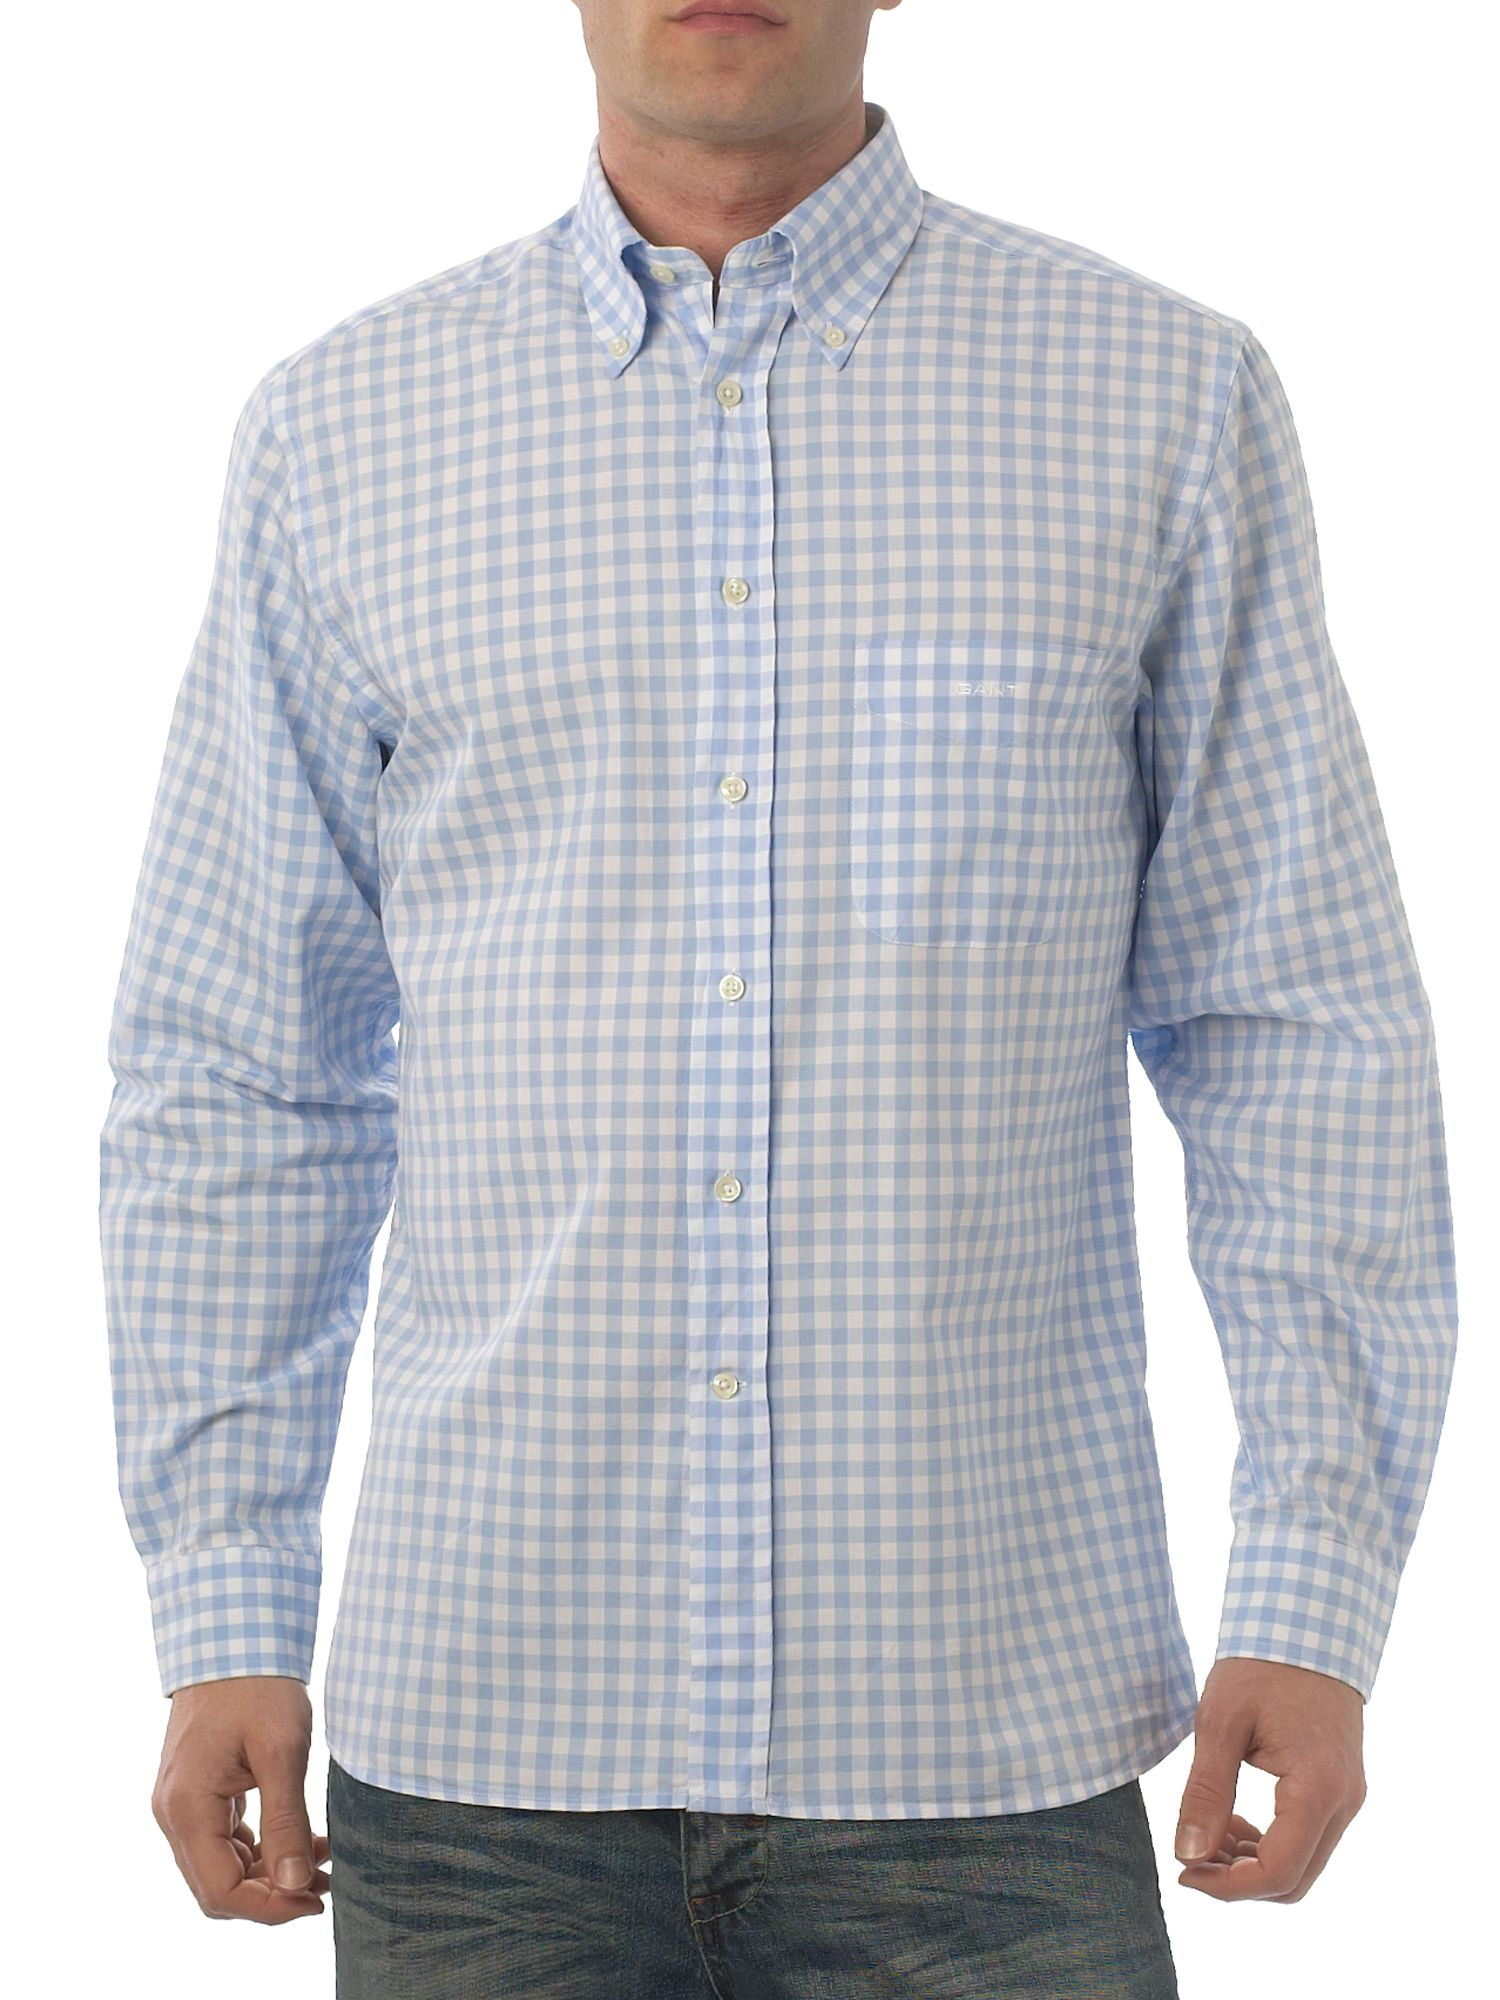 Long sleeved gingham shirt